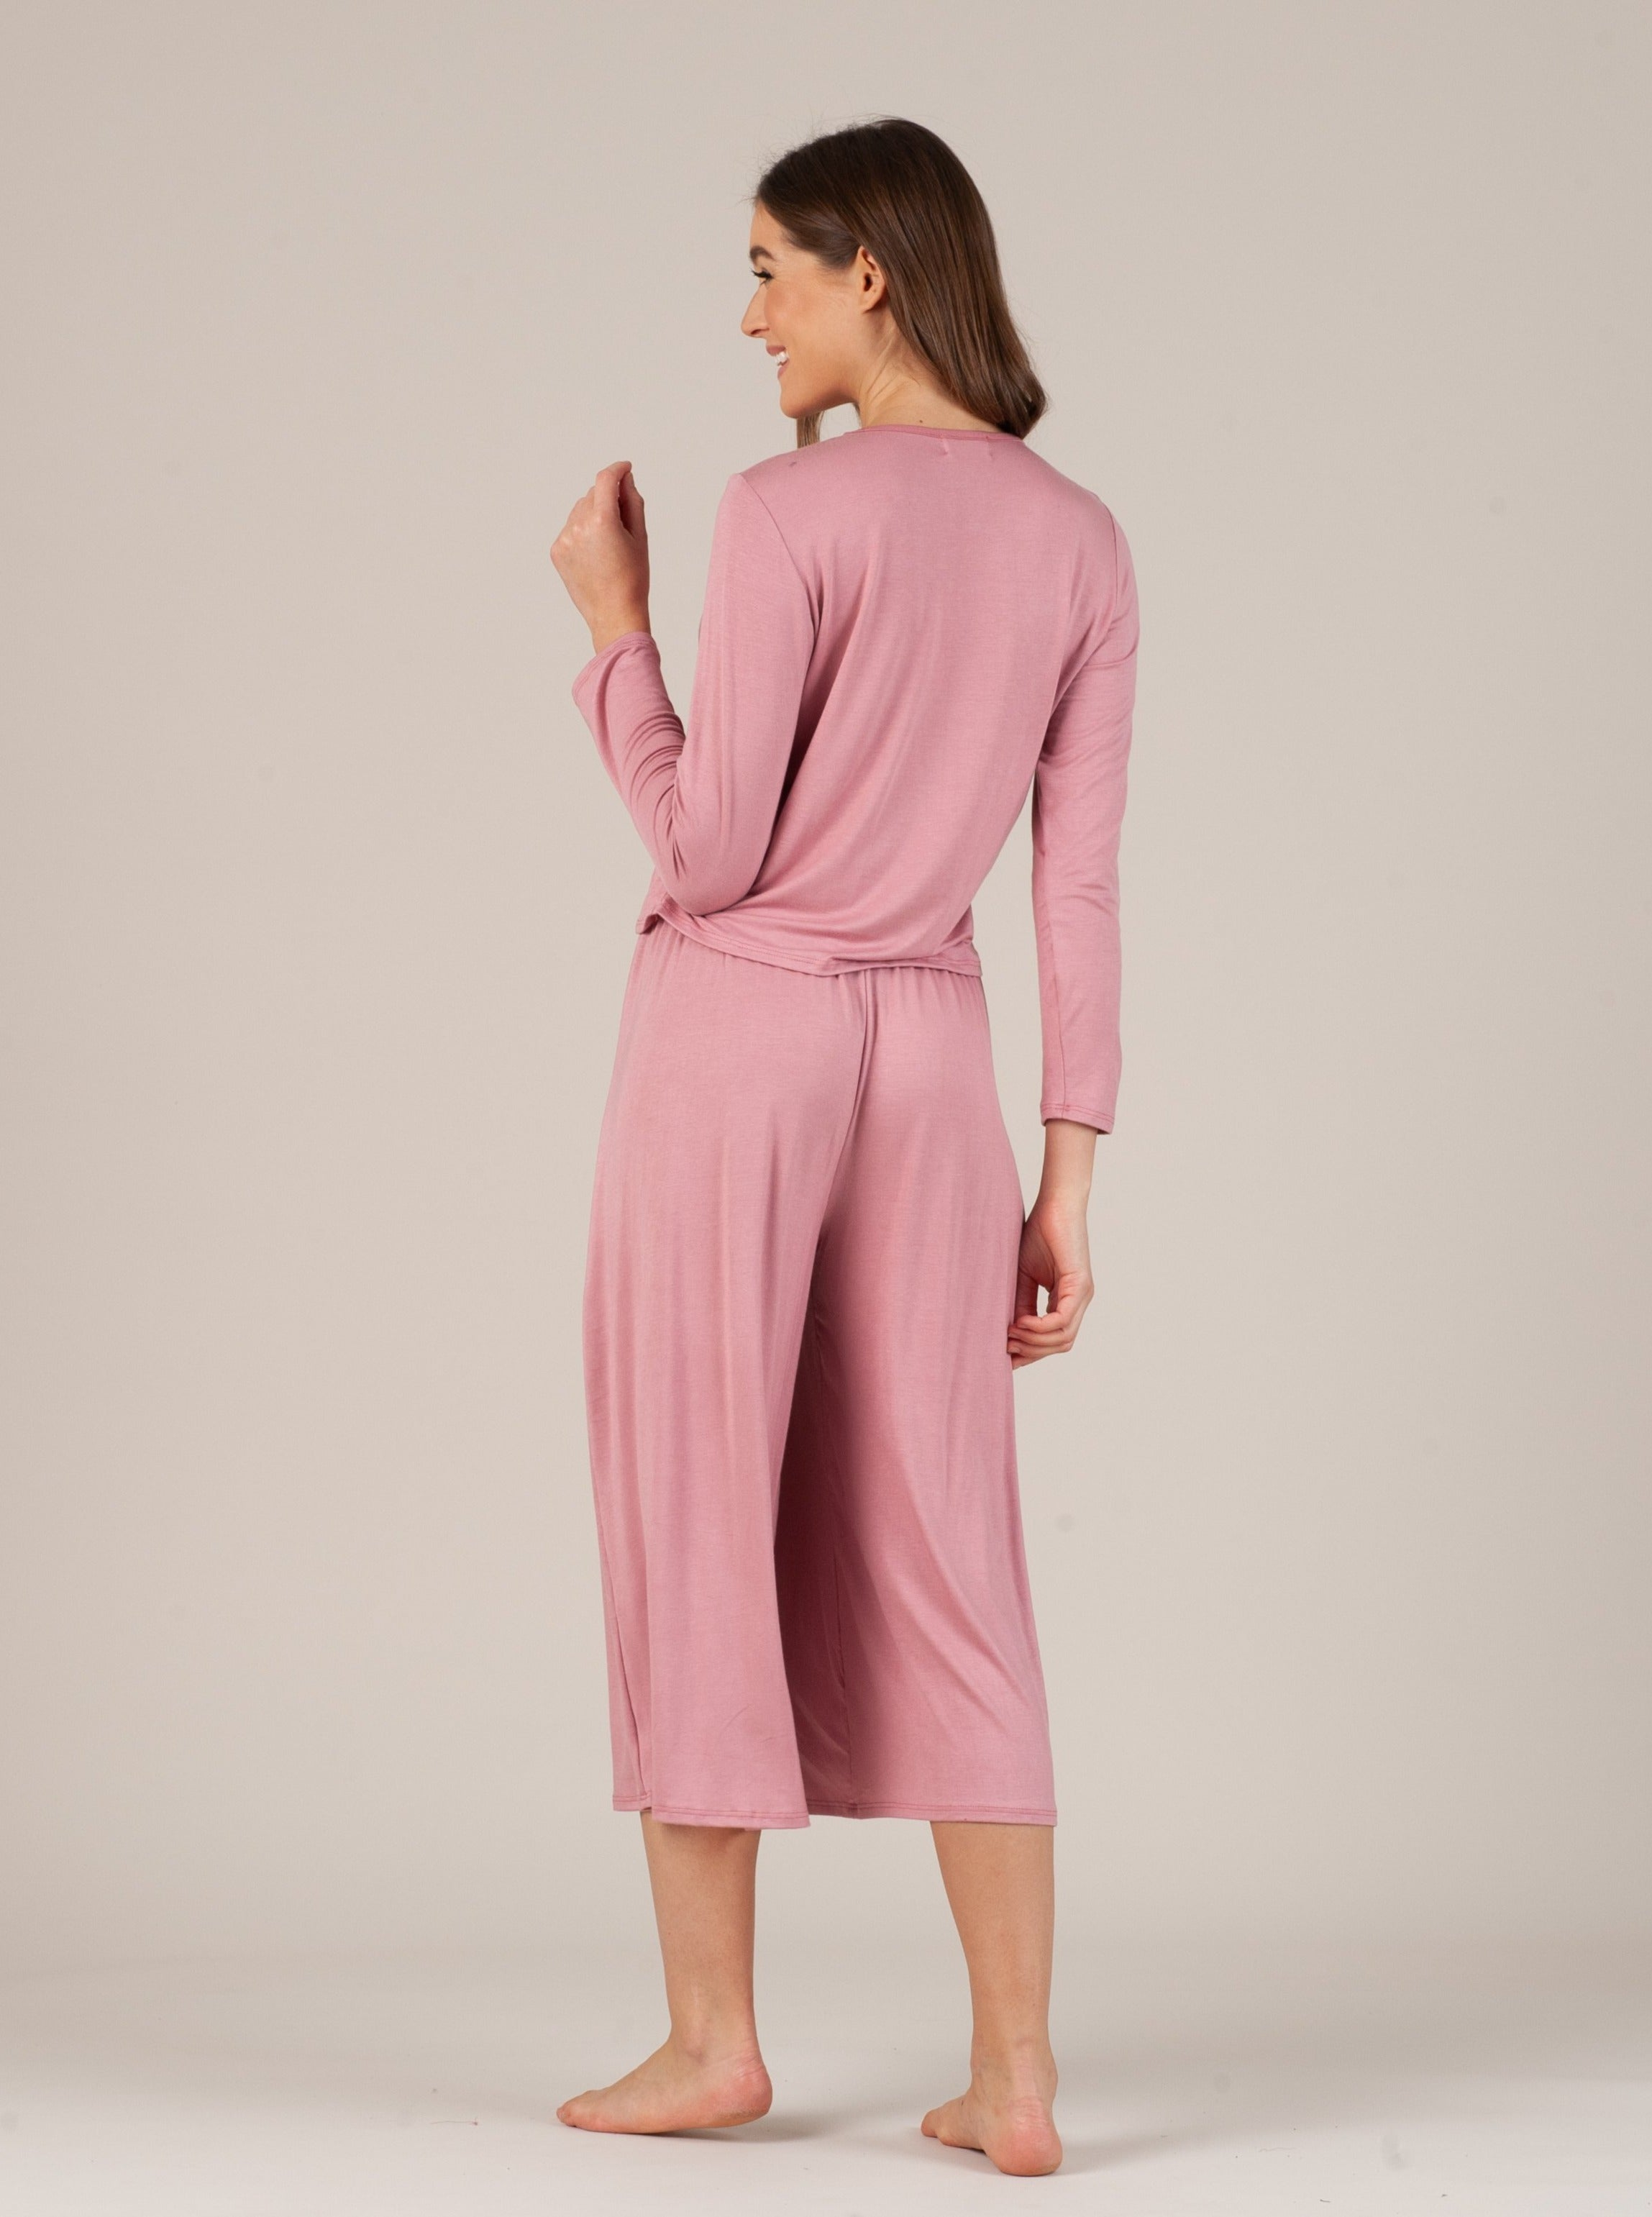 CALYPSO PINK LONG SLEEVE & PANT SET